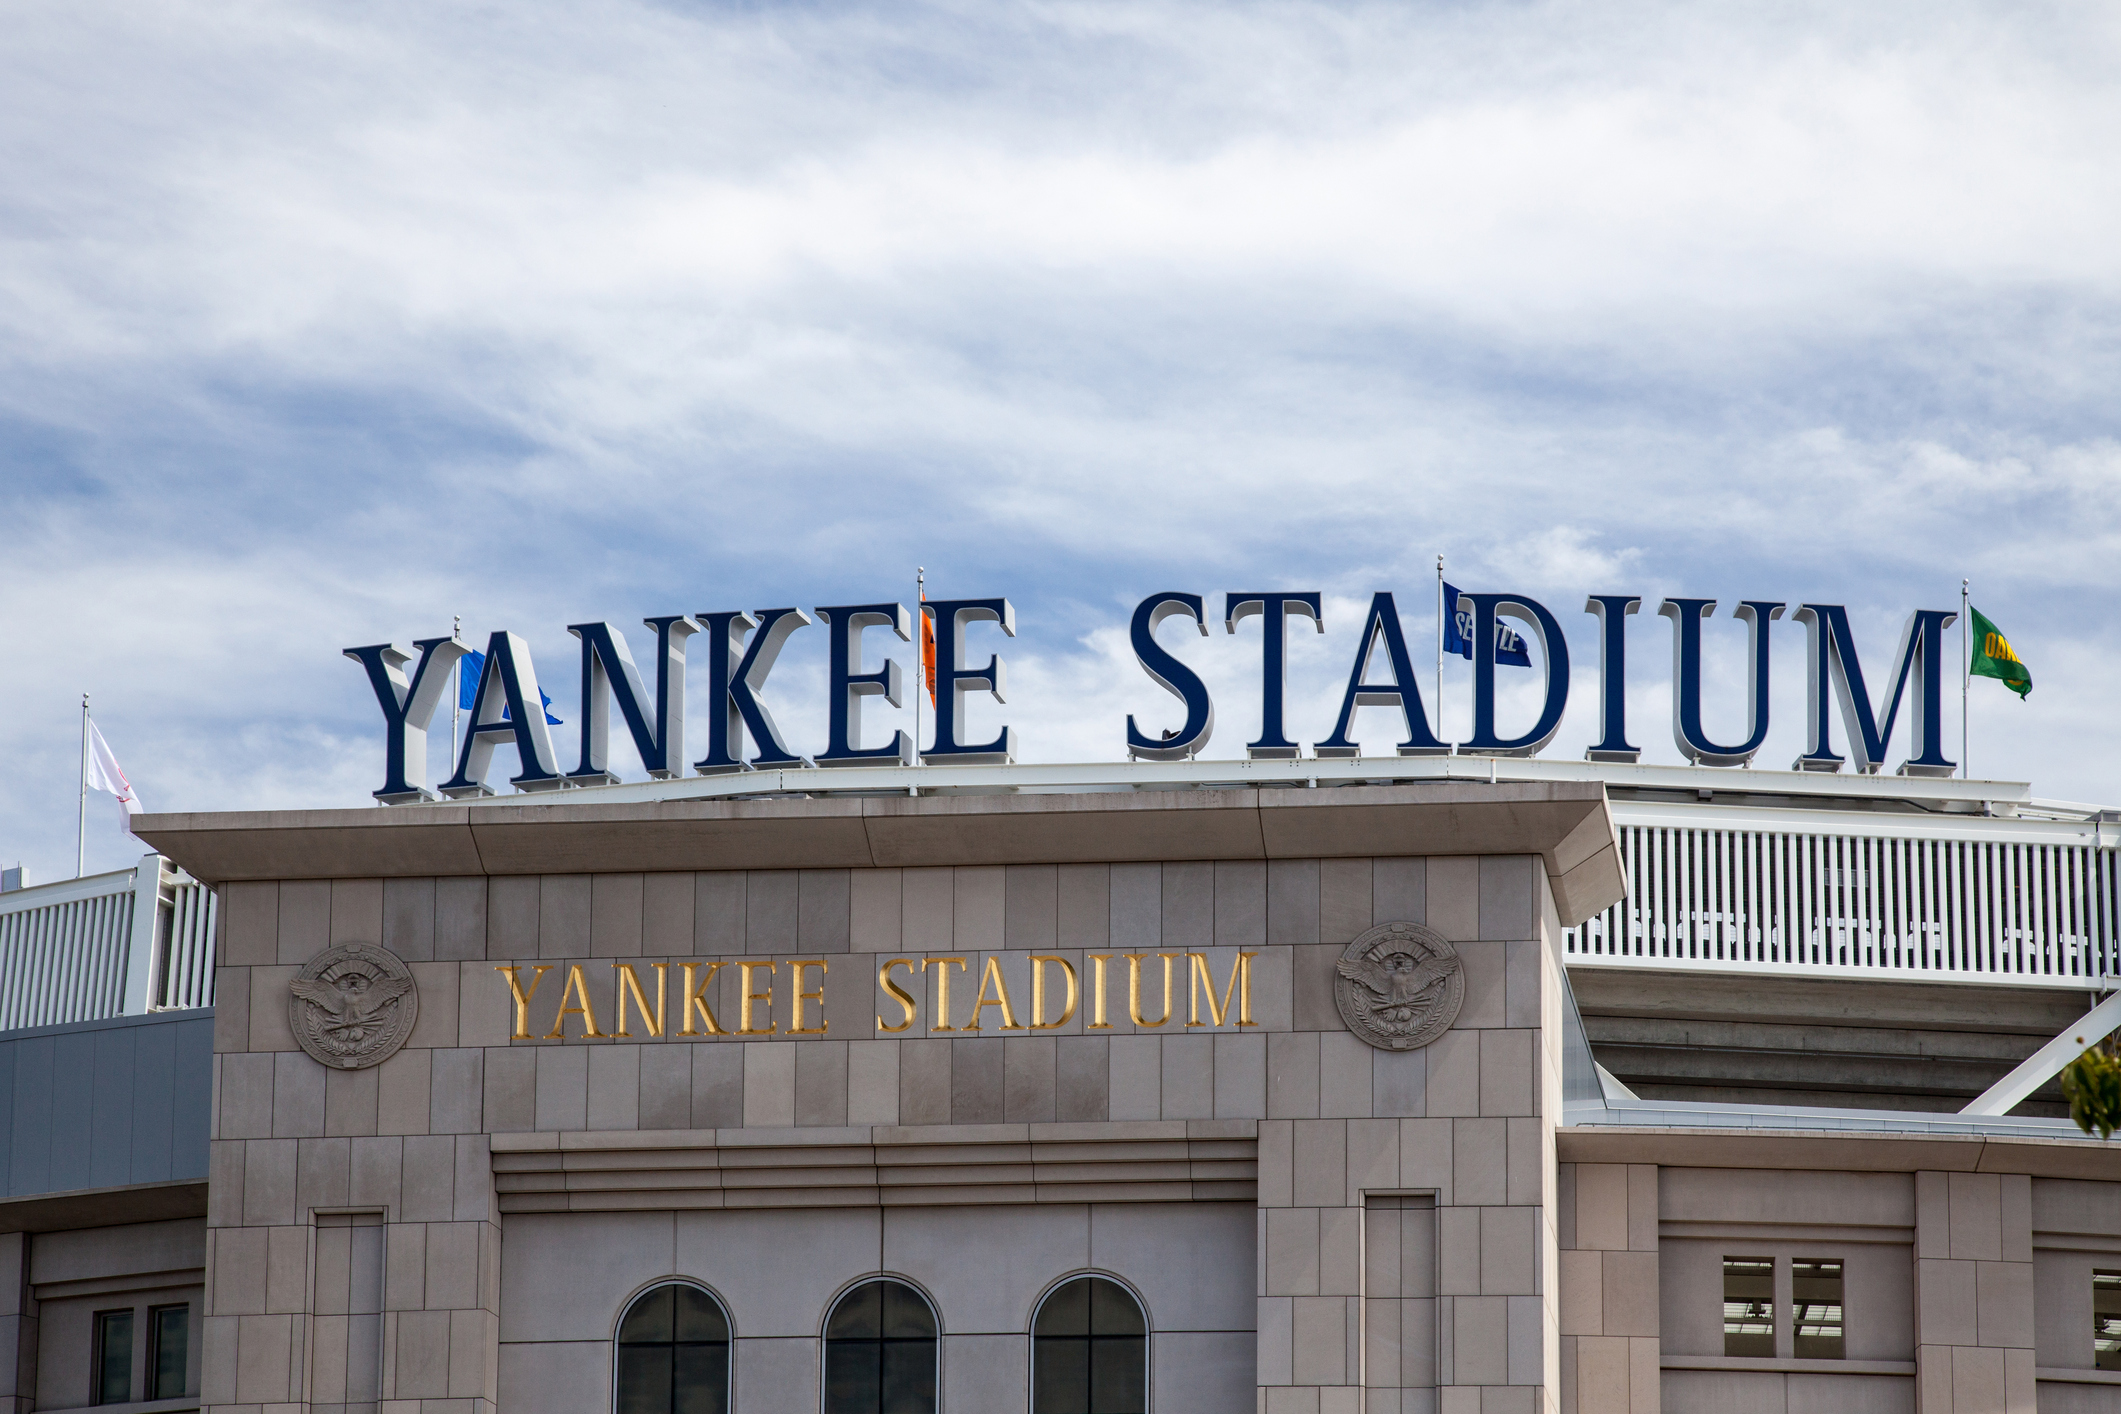 Yankee Stadium in New York City